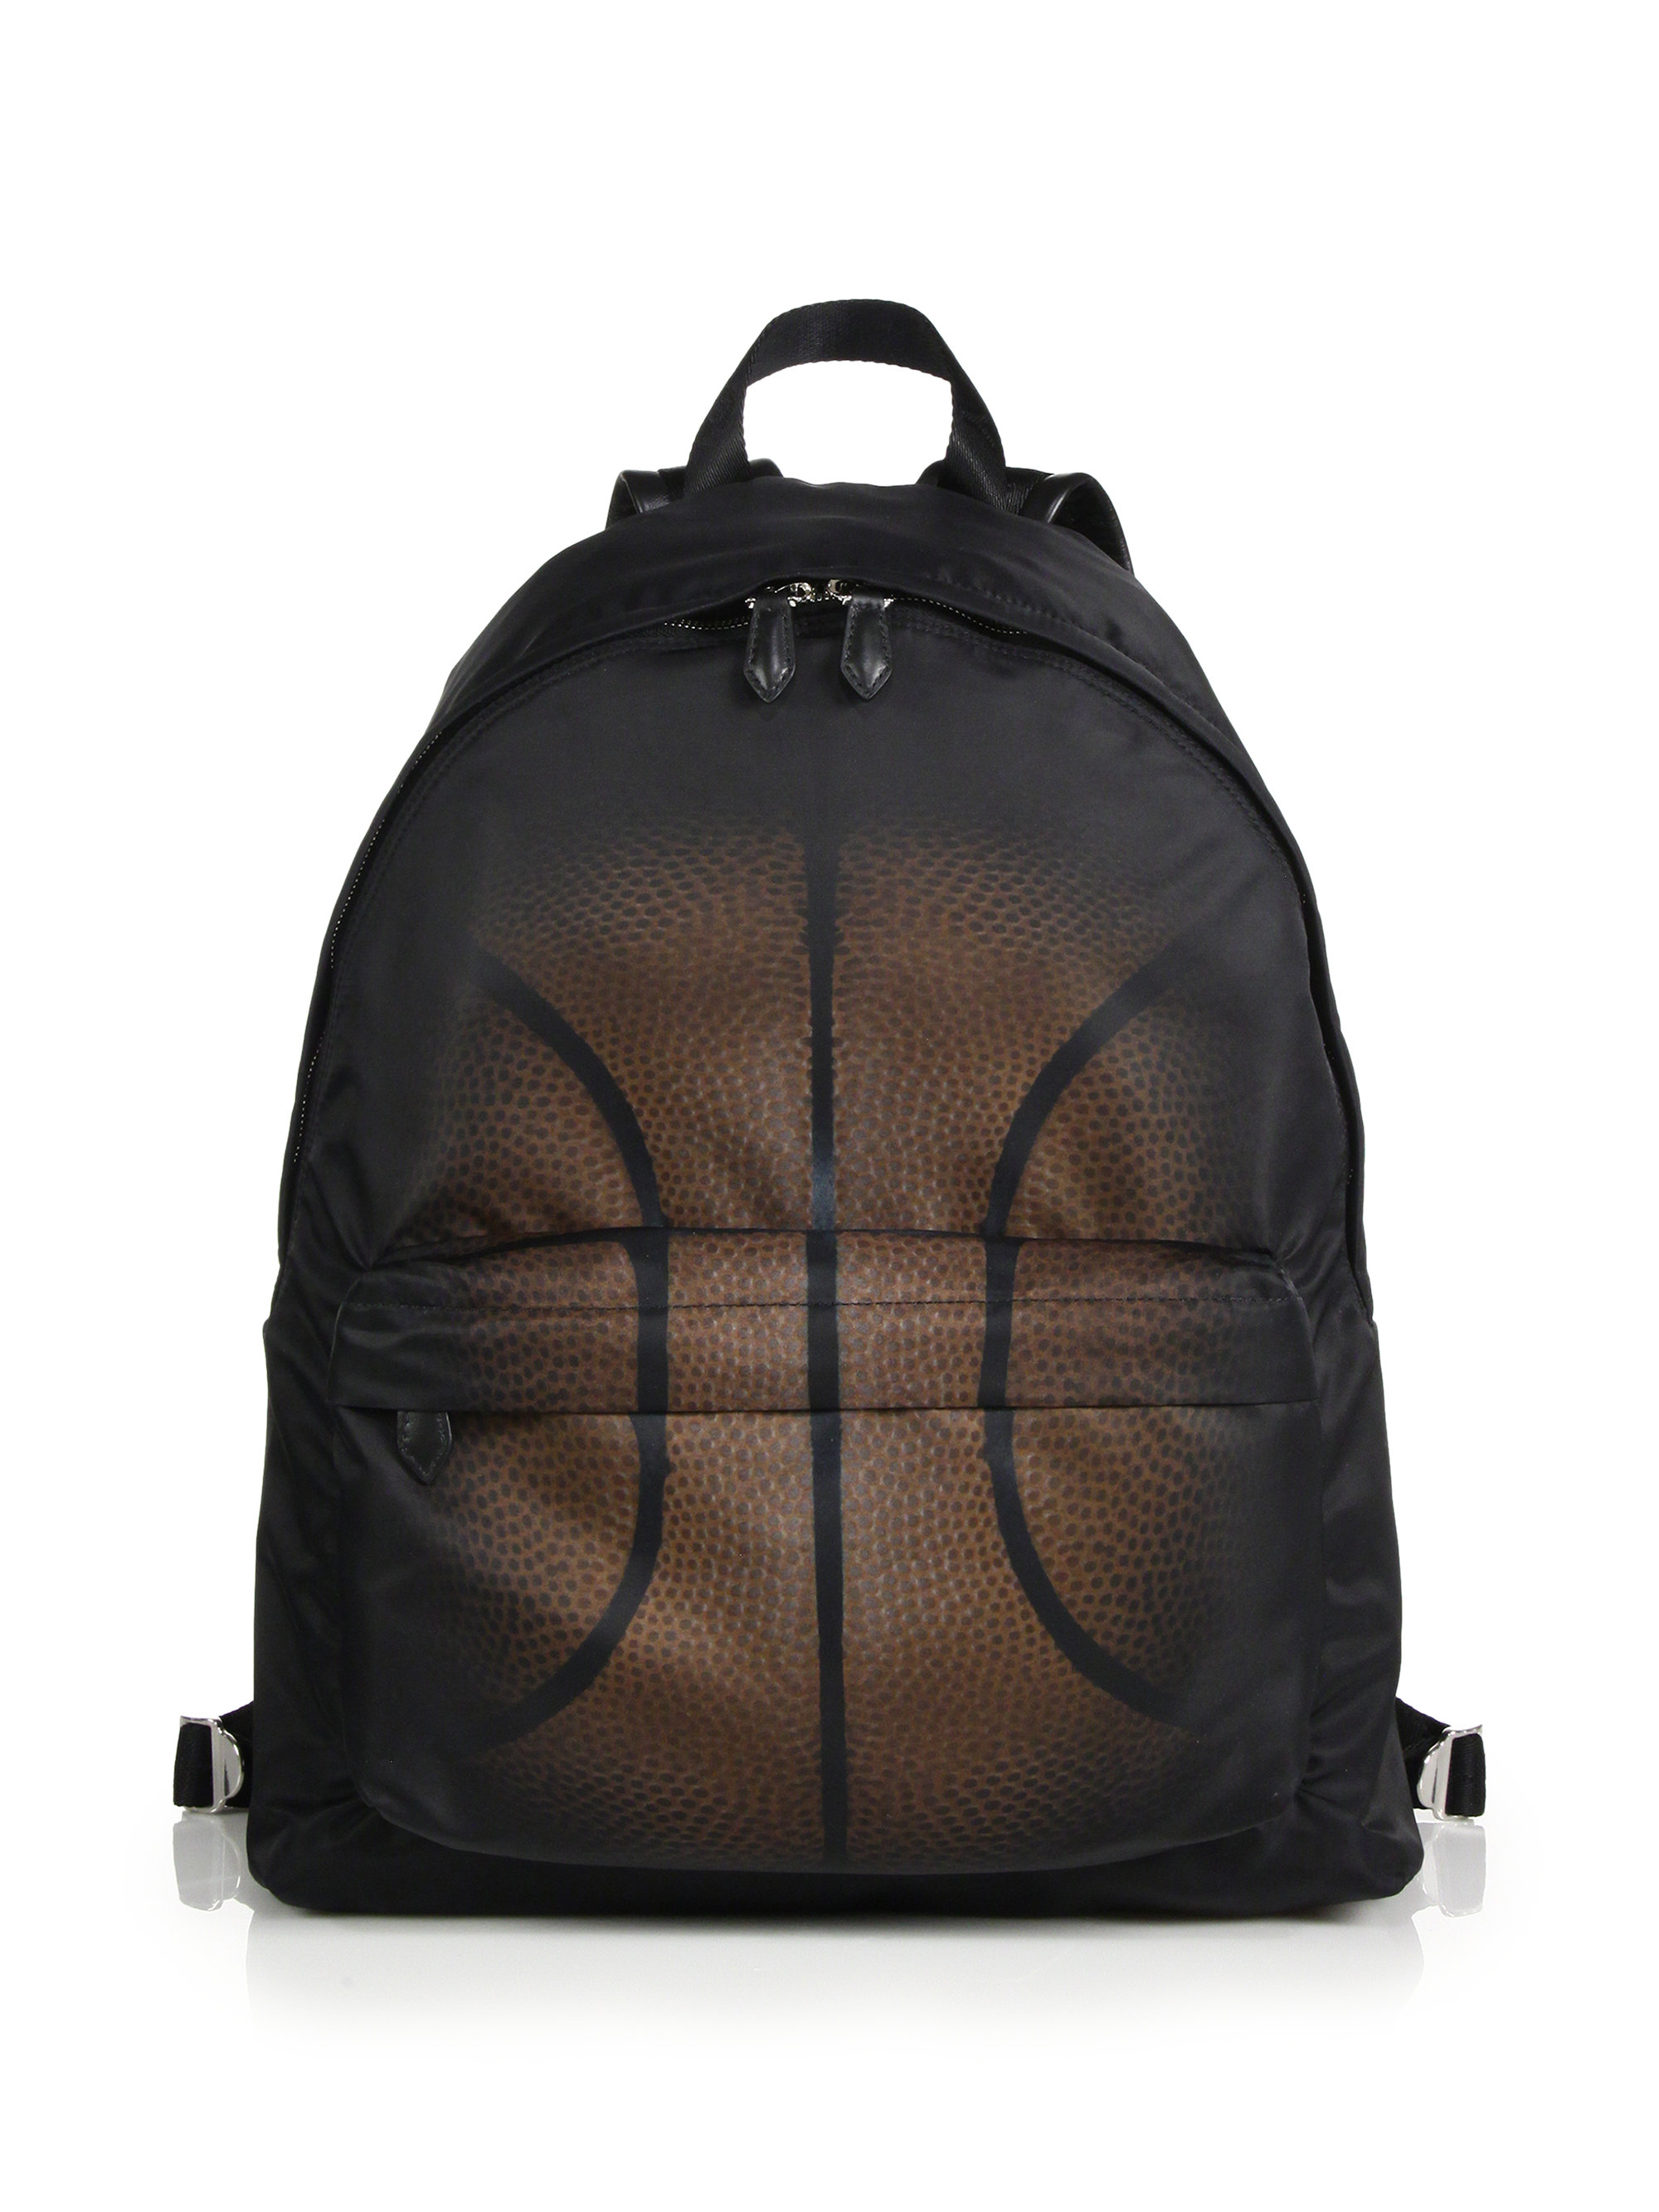 Lyst - Givenchy Items Backpack in Black for Men efe9a7d6a8c2a